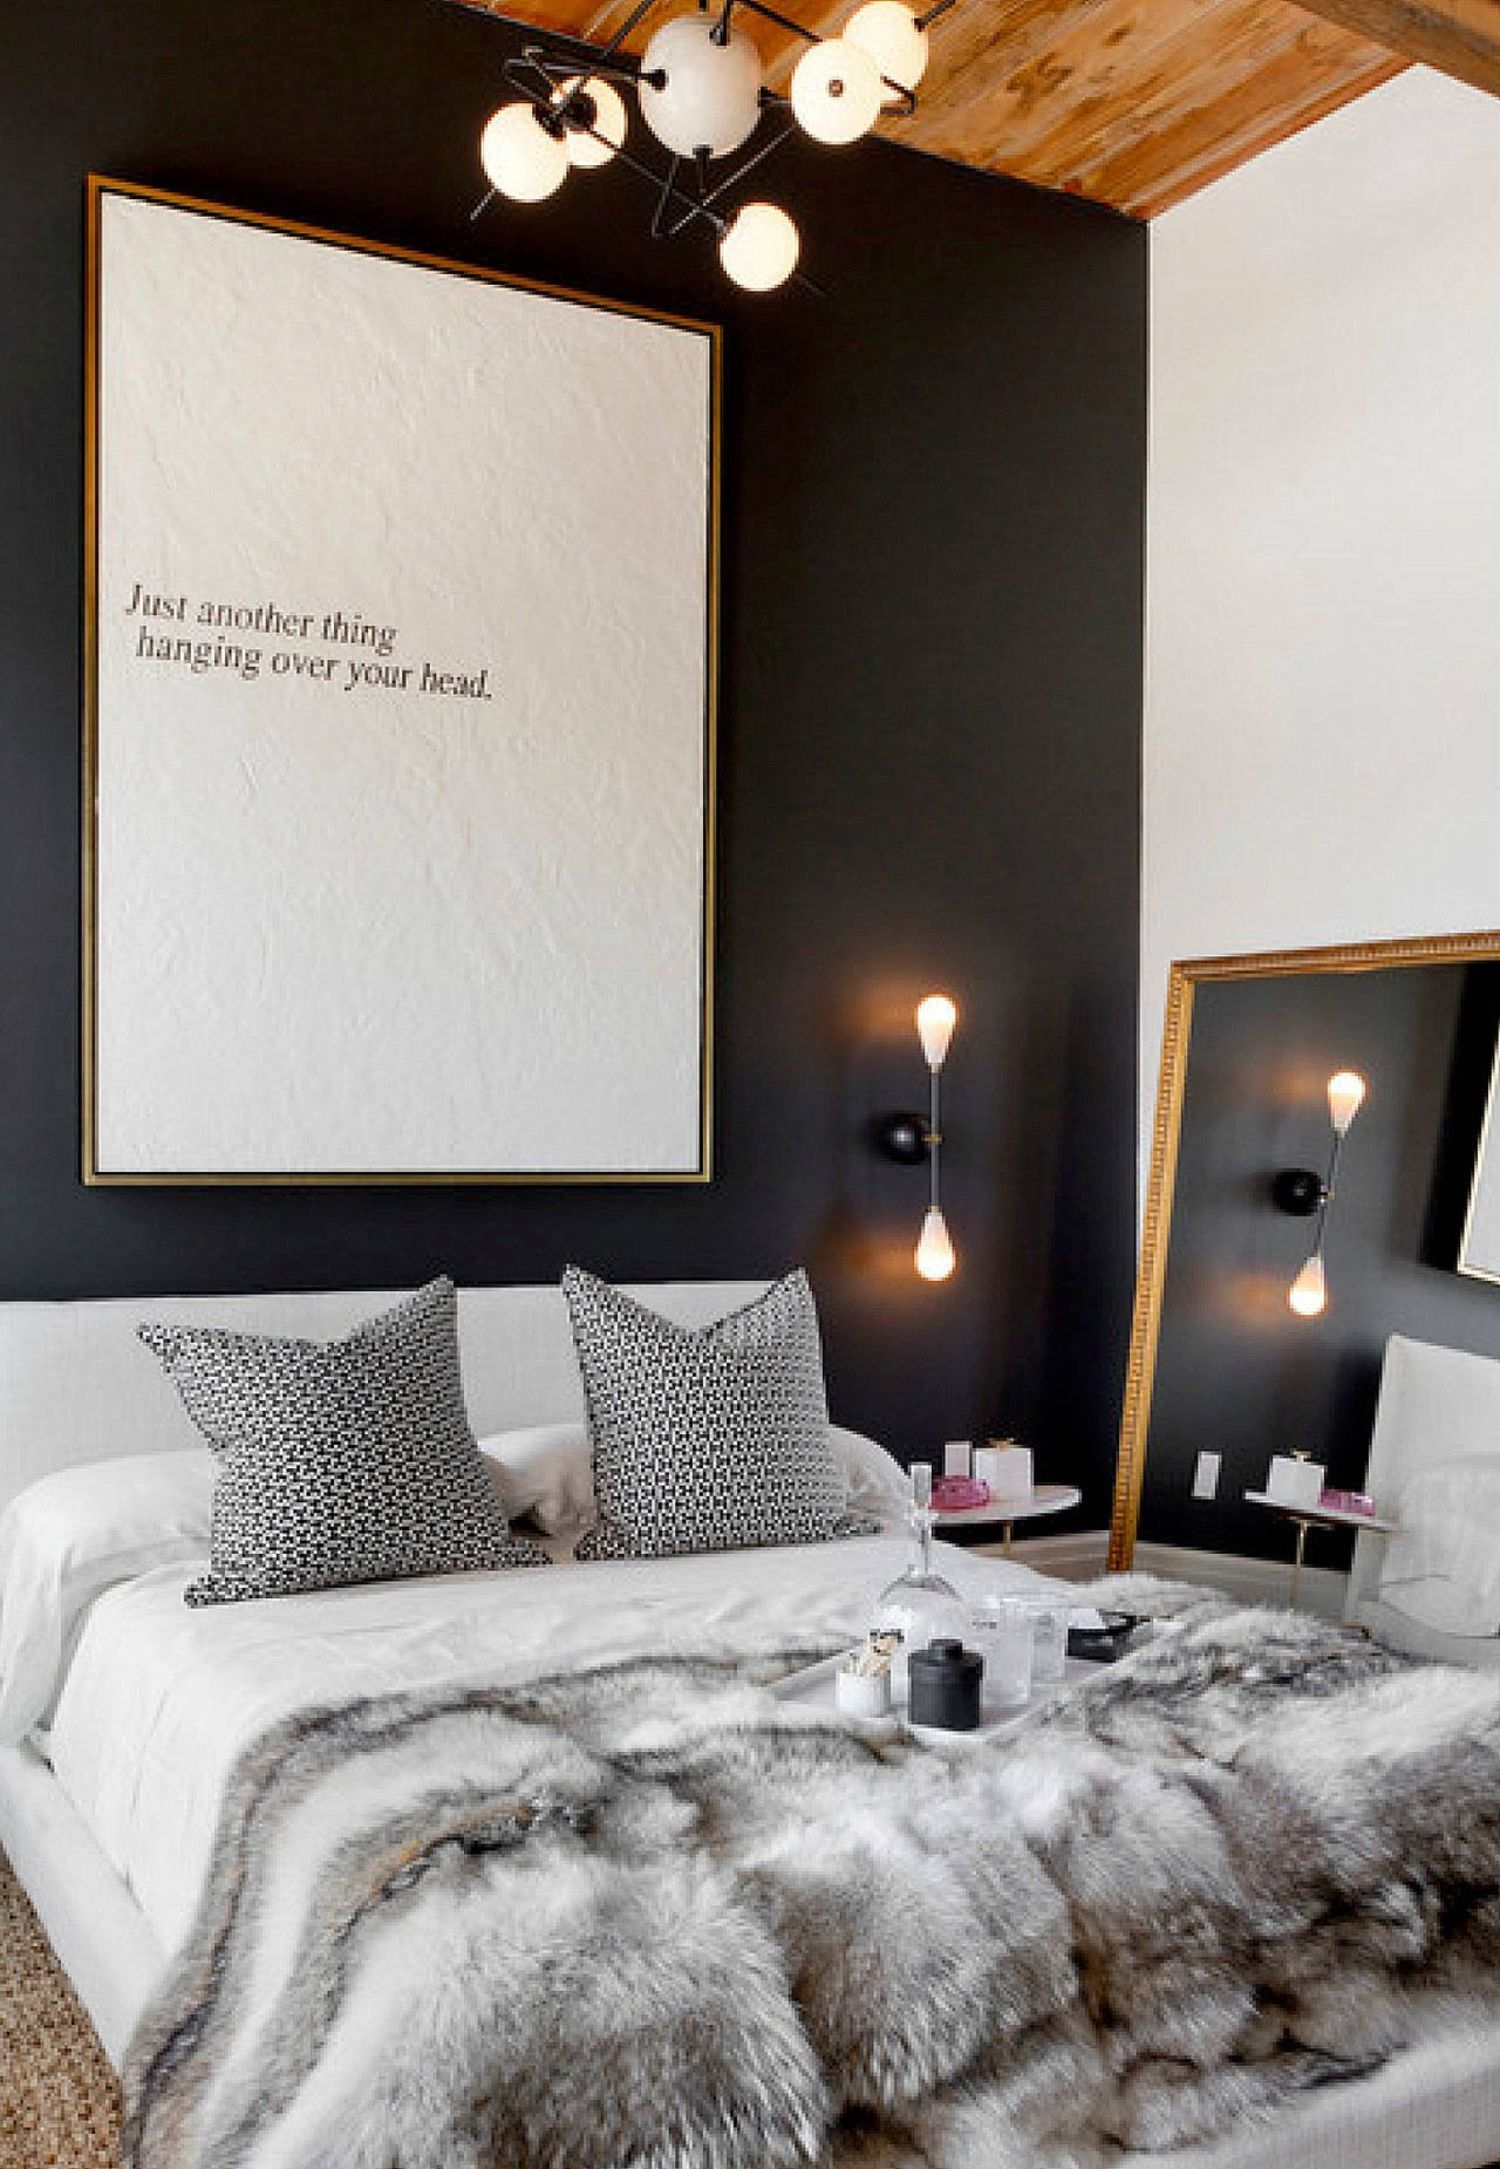 7 Ways To Rethink The Space Right Over Your Bed Apartment